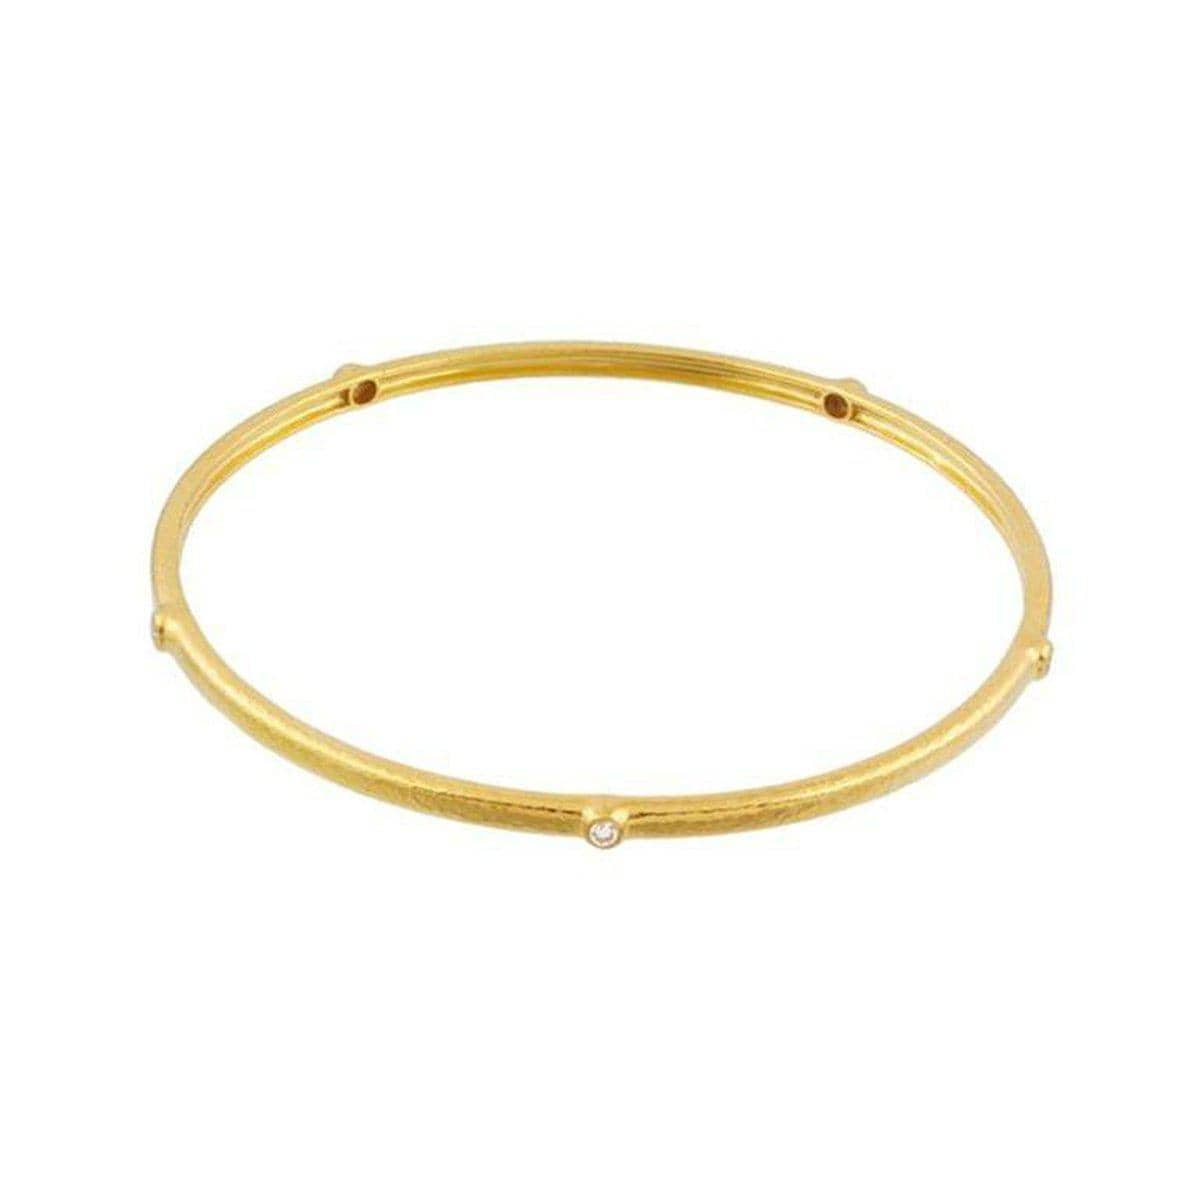 Pointelle 22K Gold White Diamond Bracelet - BB-290-5DI-GURHAN-Renee Taylor Gallery